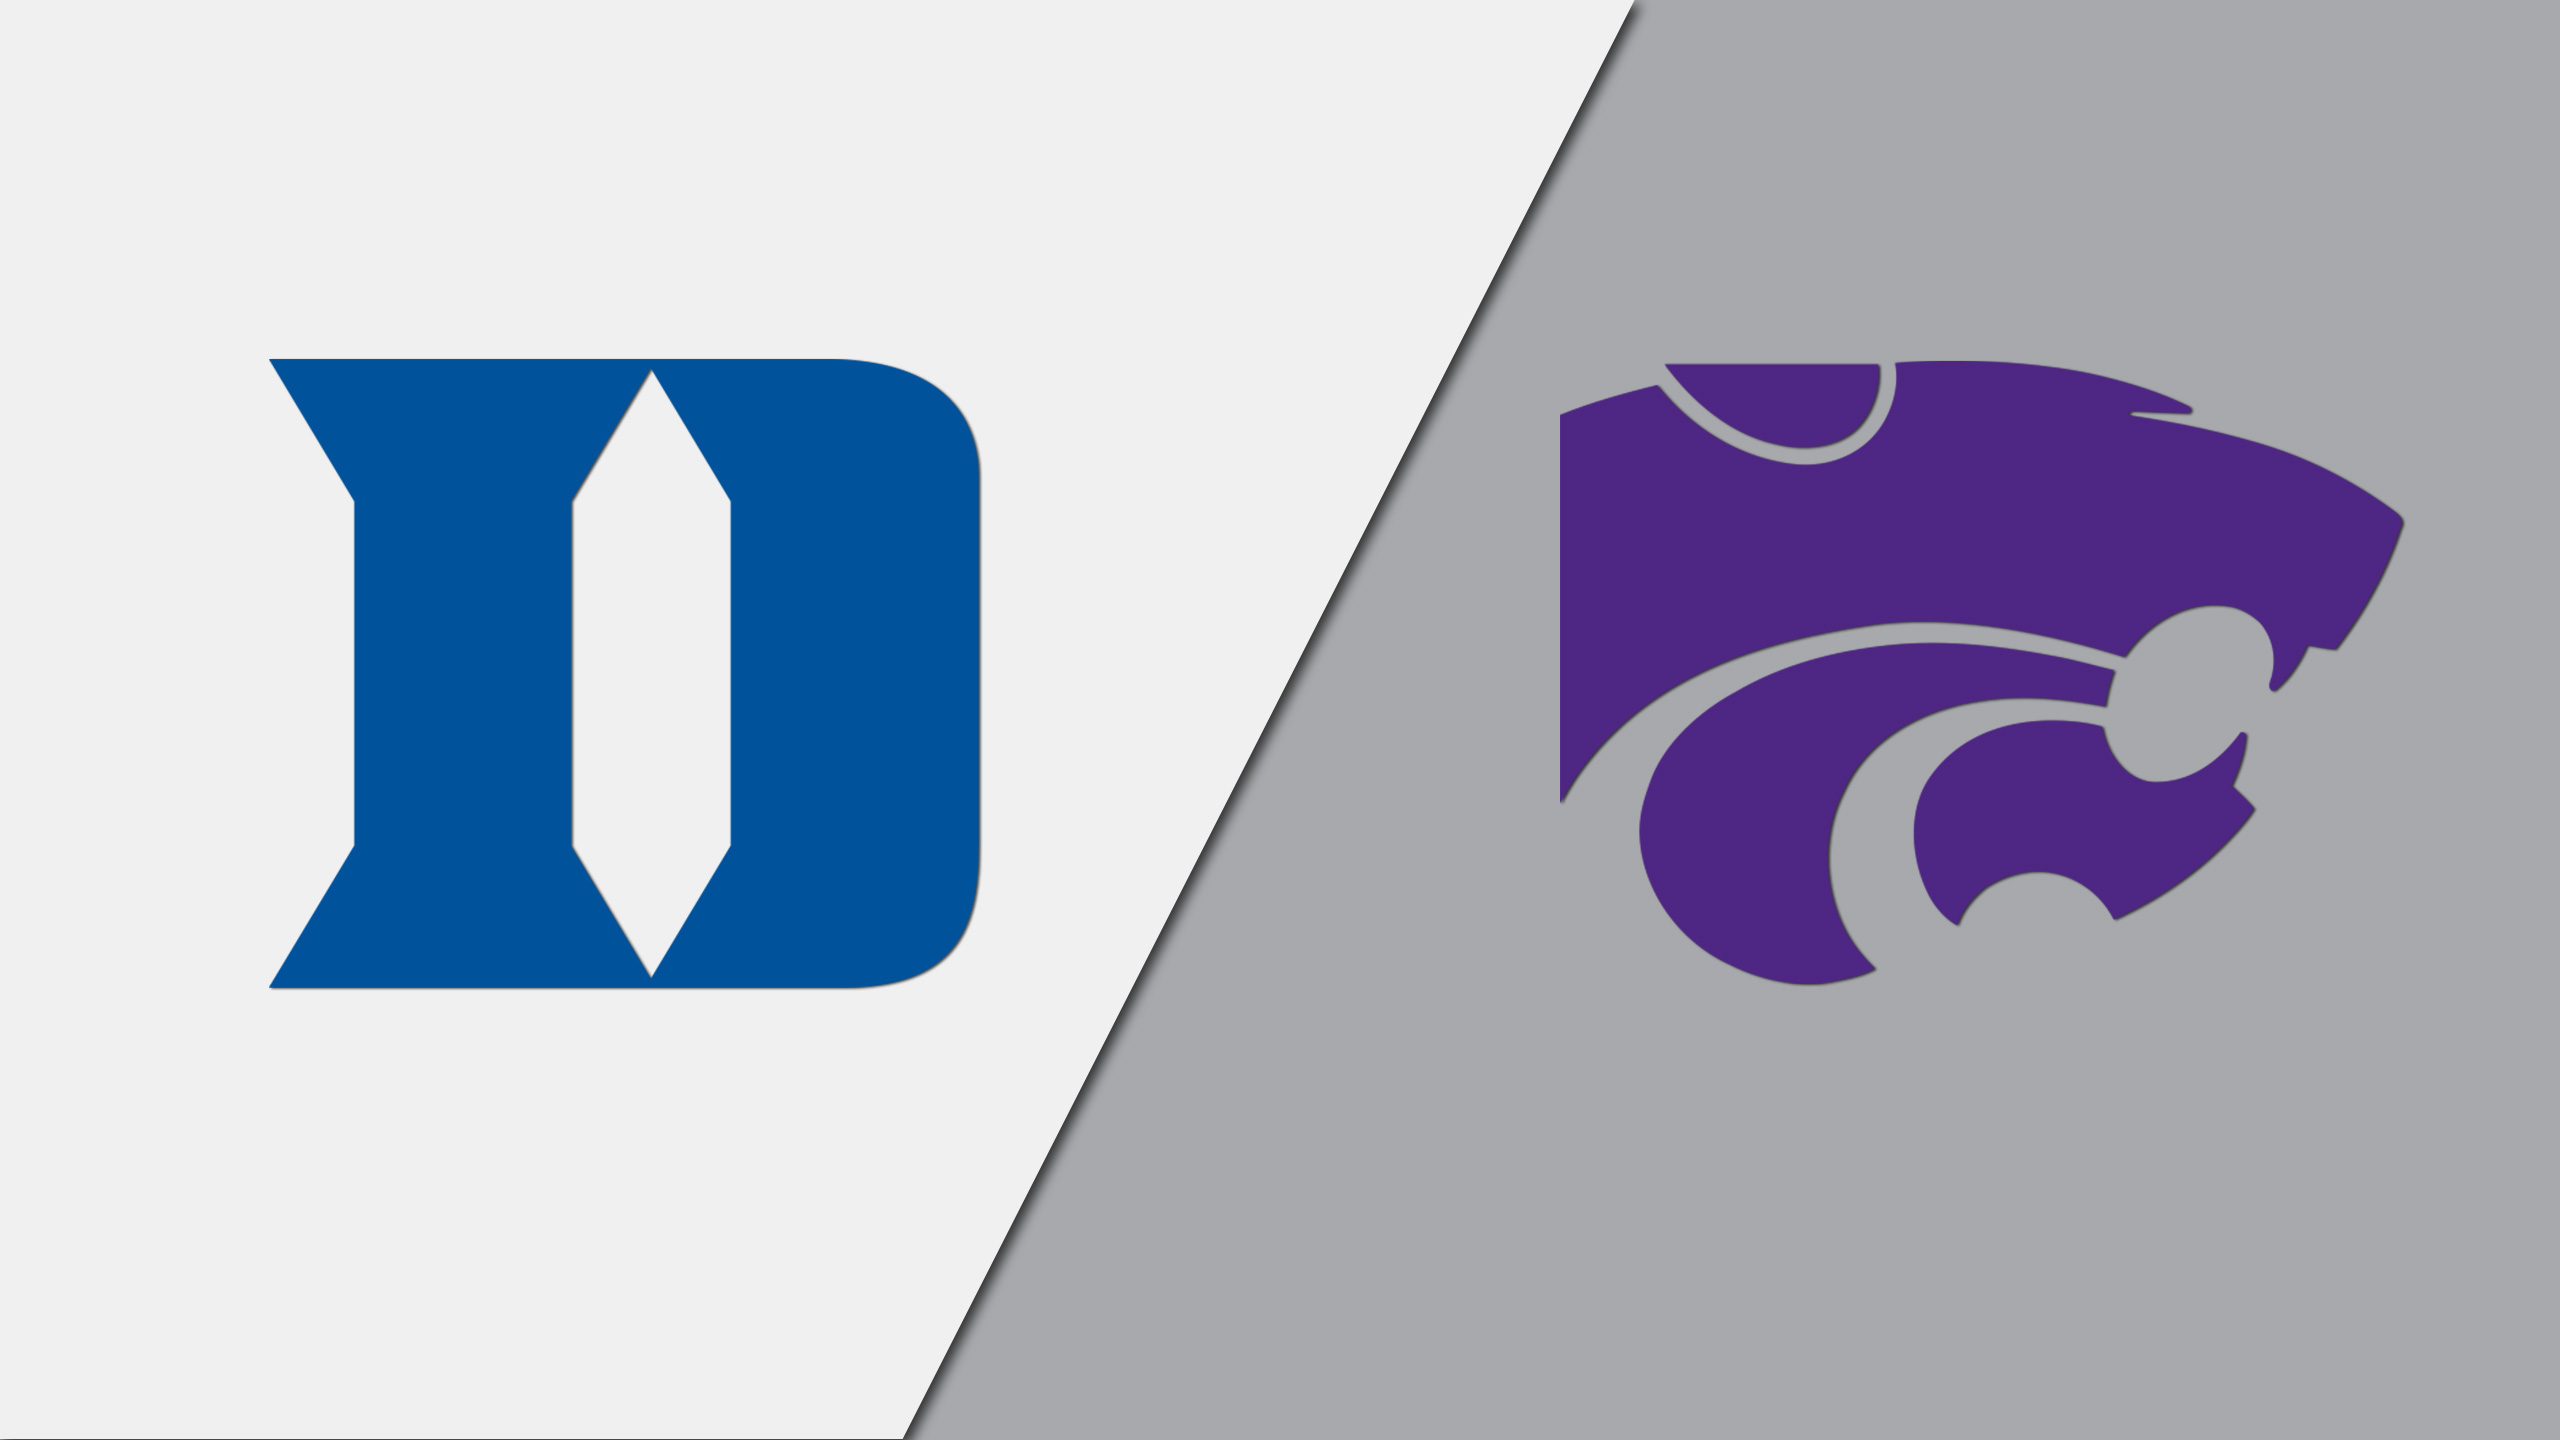 #1 Duke vs. #4 Kansas State (Championship) - 11/23/2010 (re-air)